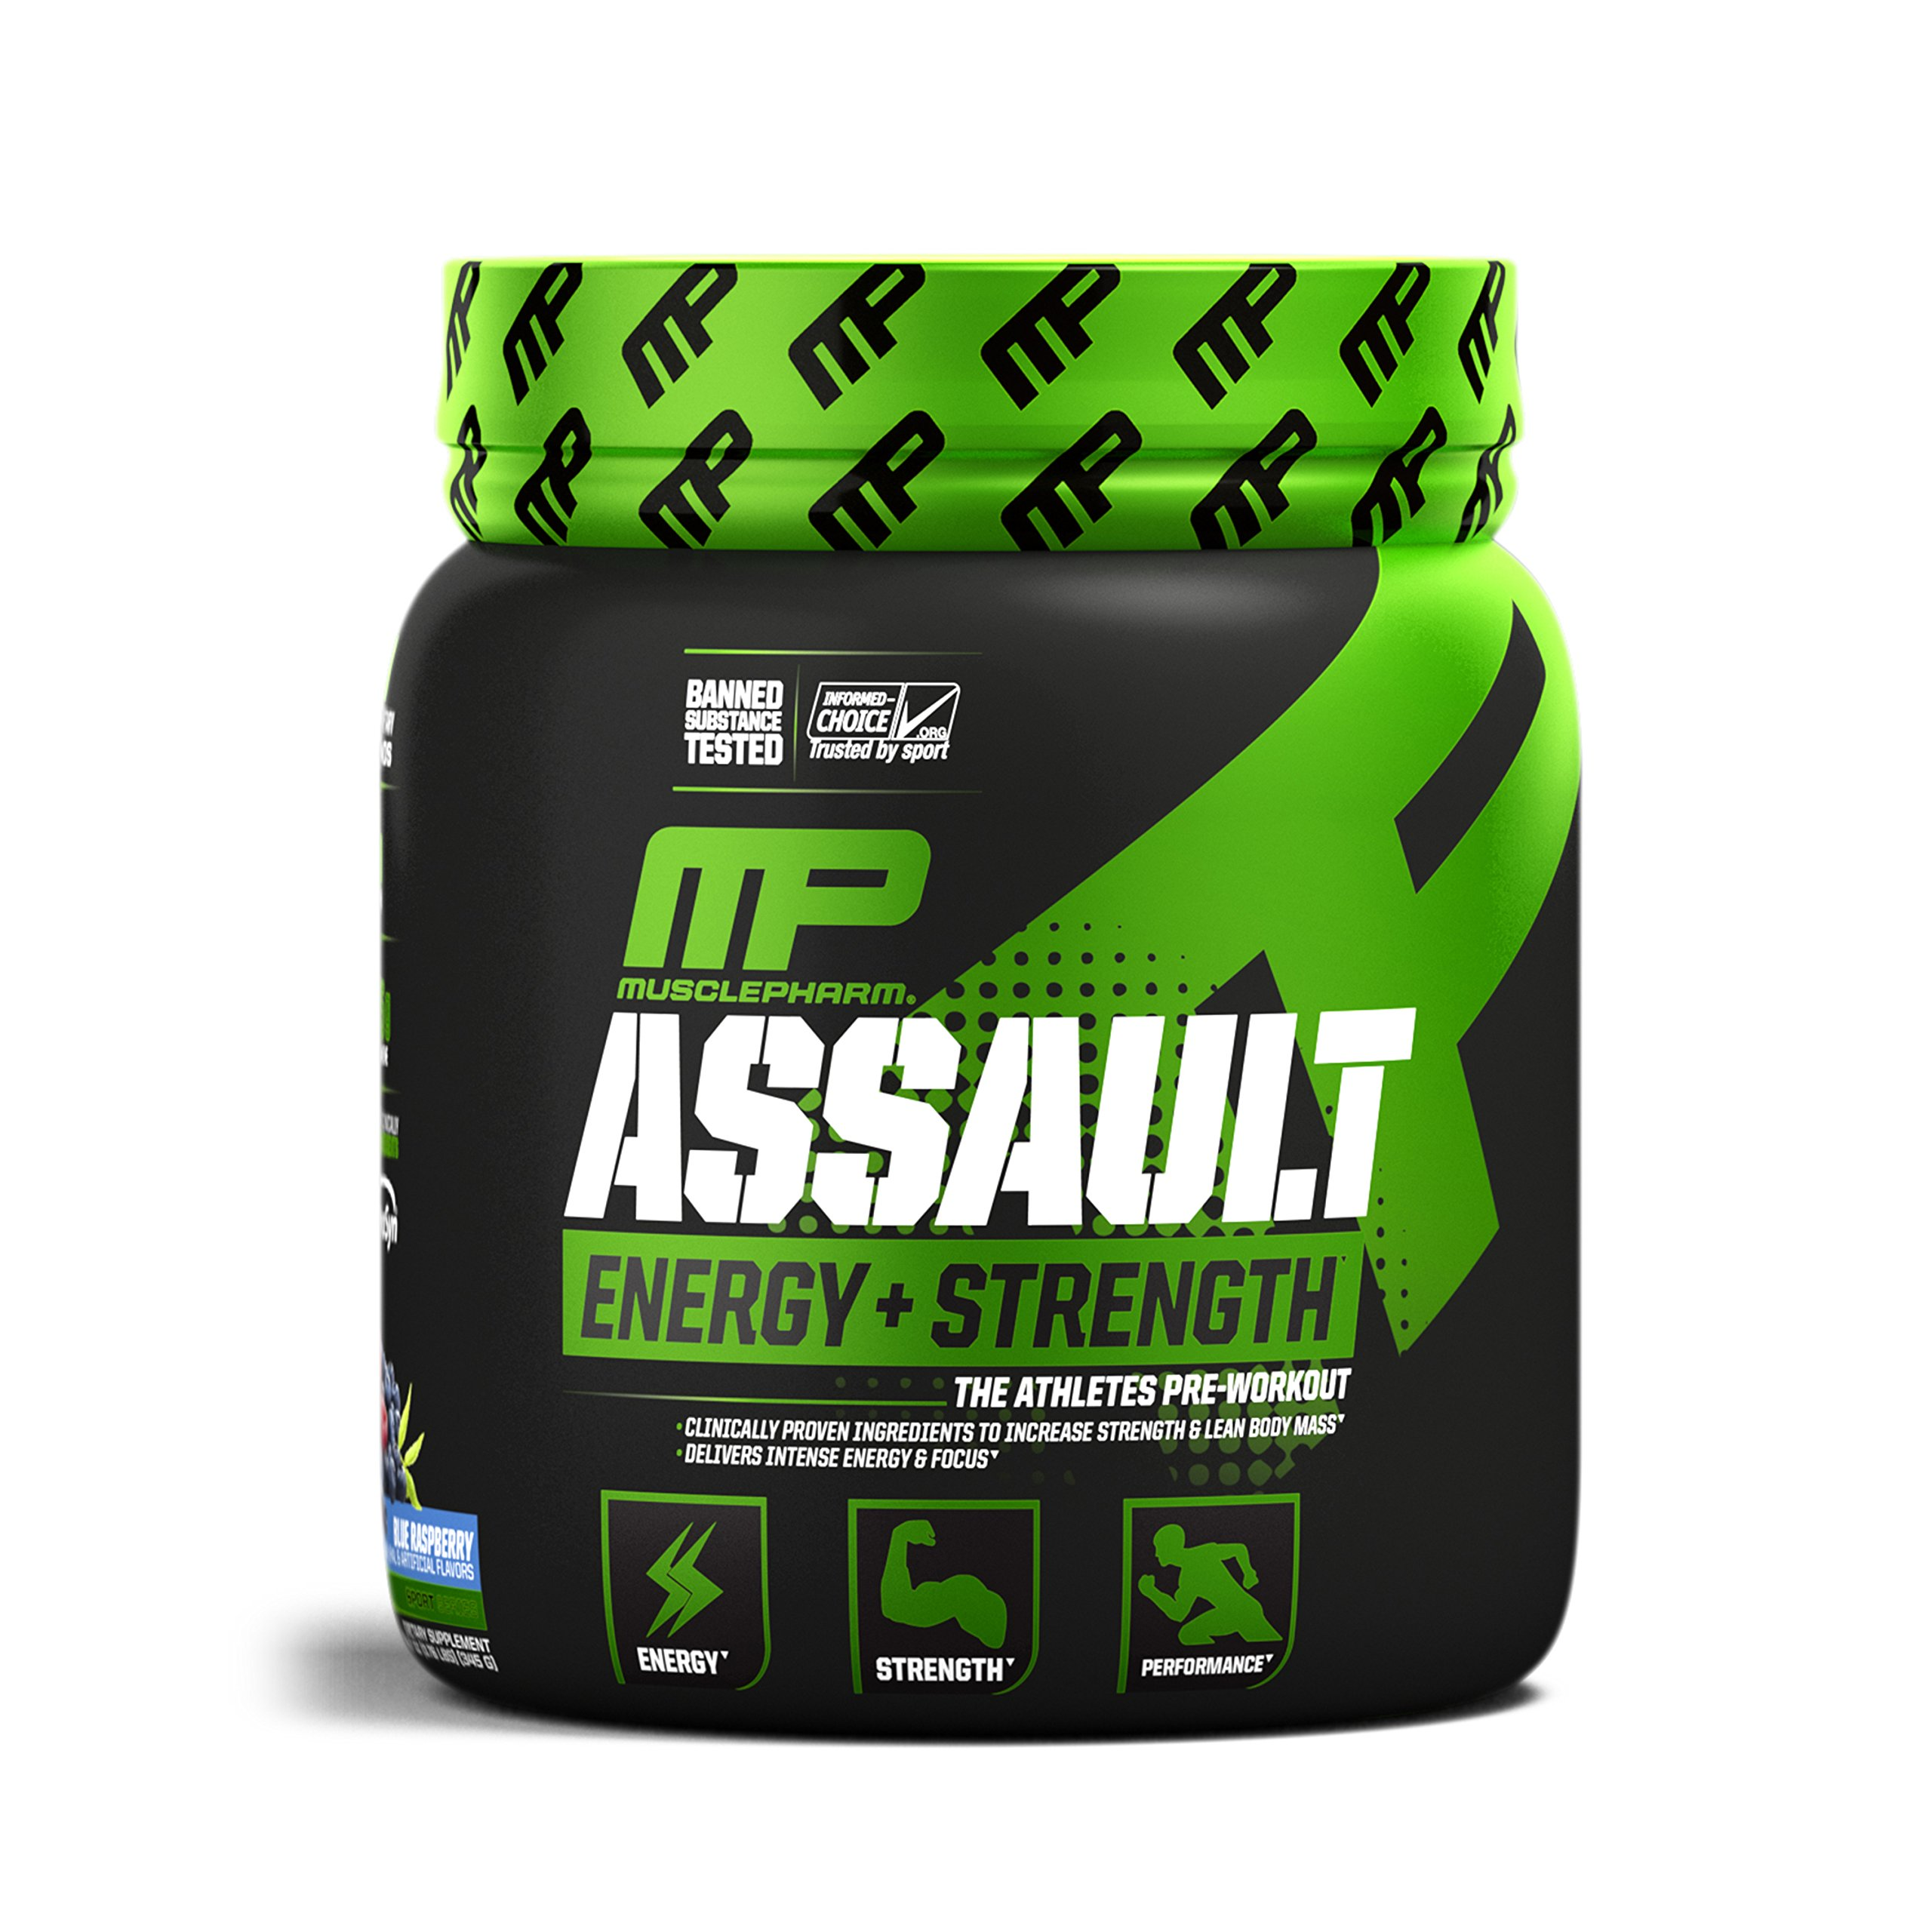 MusclePharm Assault Sport Pre-Workout Powder with High-Dose Energy, Focus, Strength, and Endurance with Creatine, Taurine, and Caffeine, Blue Raspberry, Energy Drink Powder, 30 Servings by Muscle Pharm